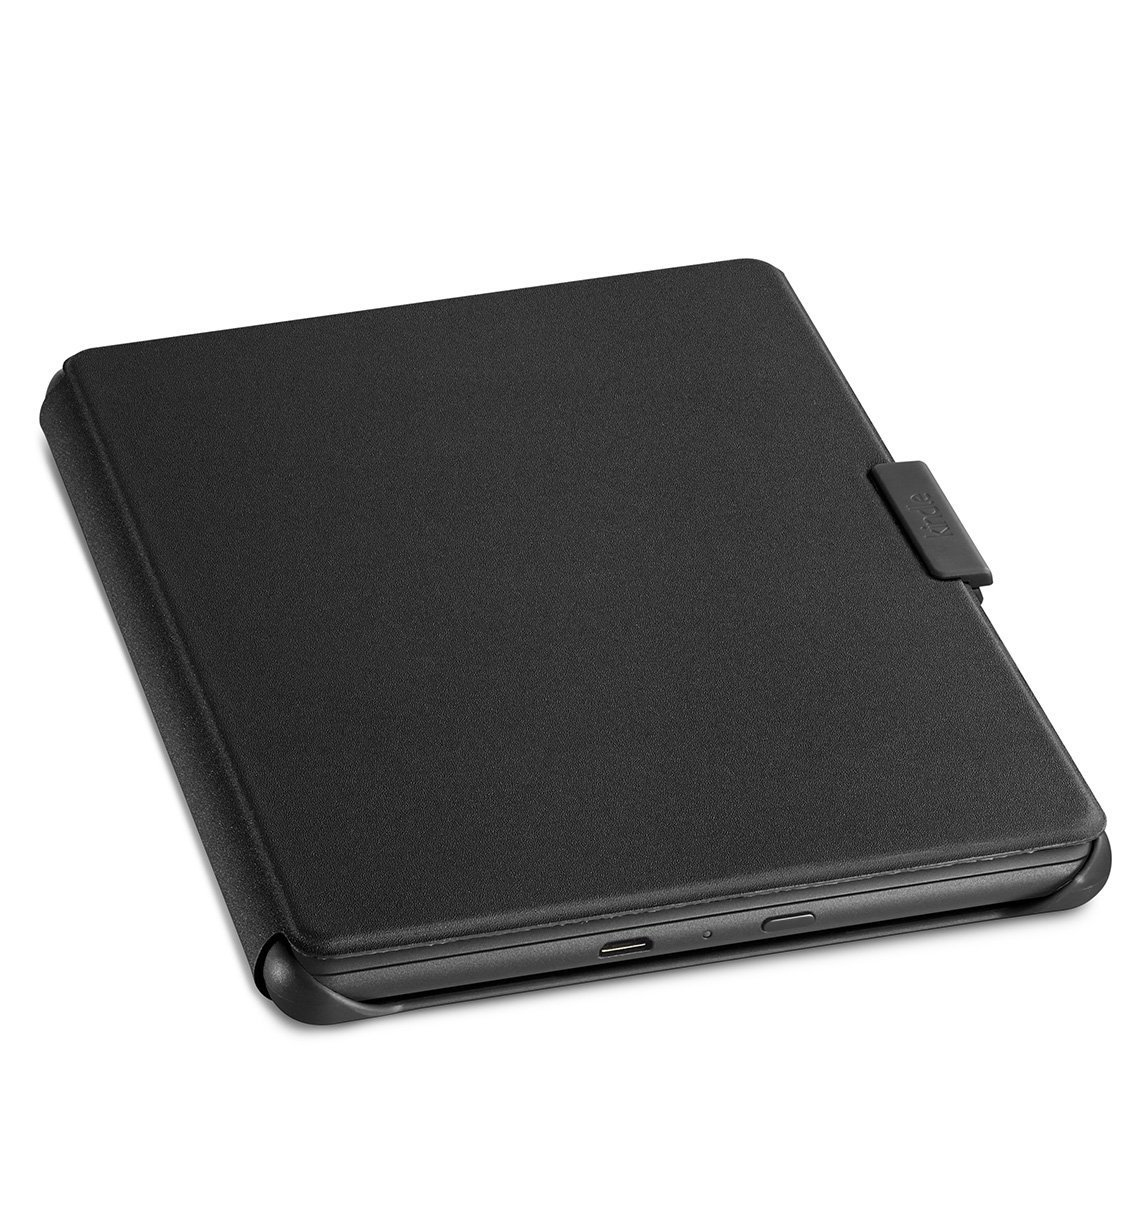 Чехол обложка Amazon Cover Case for All-New Kindle 8 (2016) Black. Фото N5